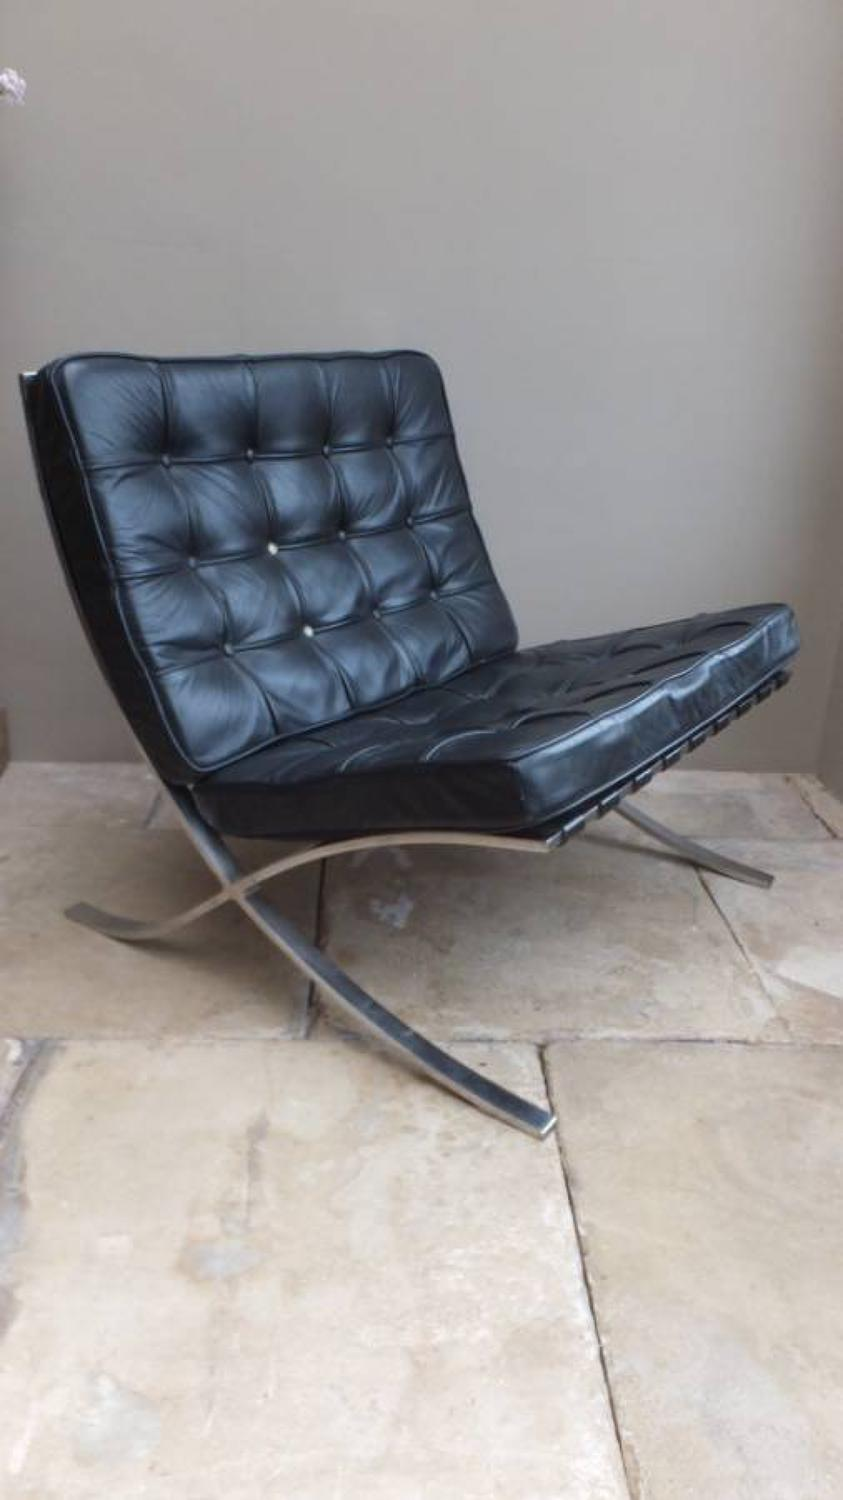 1960s Knoll Barcelona Chair by Mies Van Der Rohe